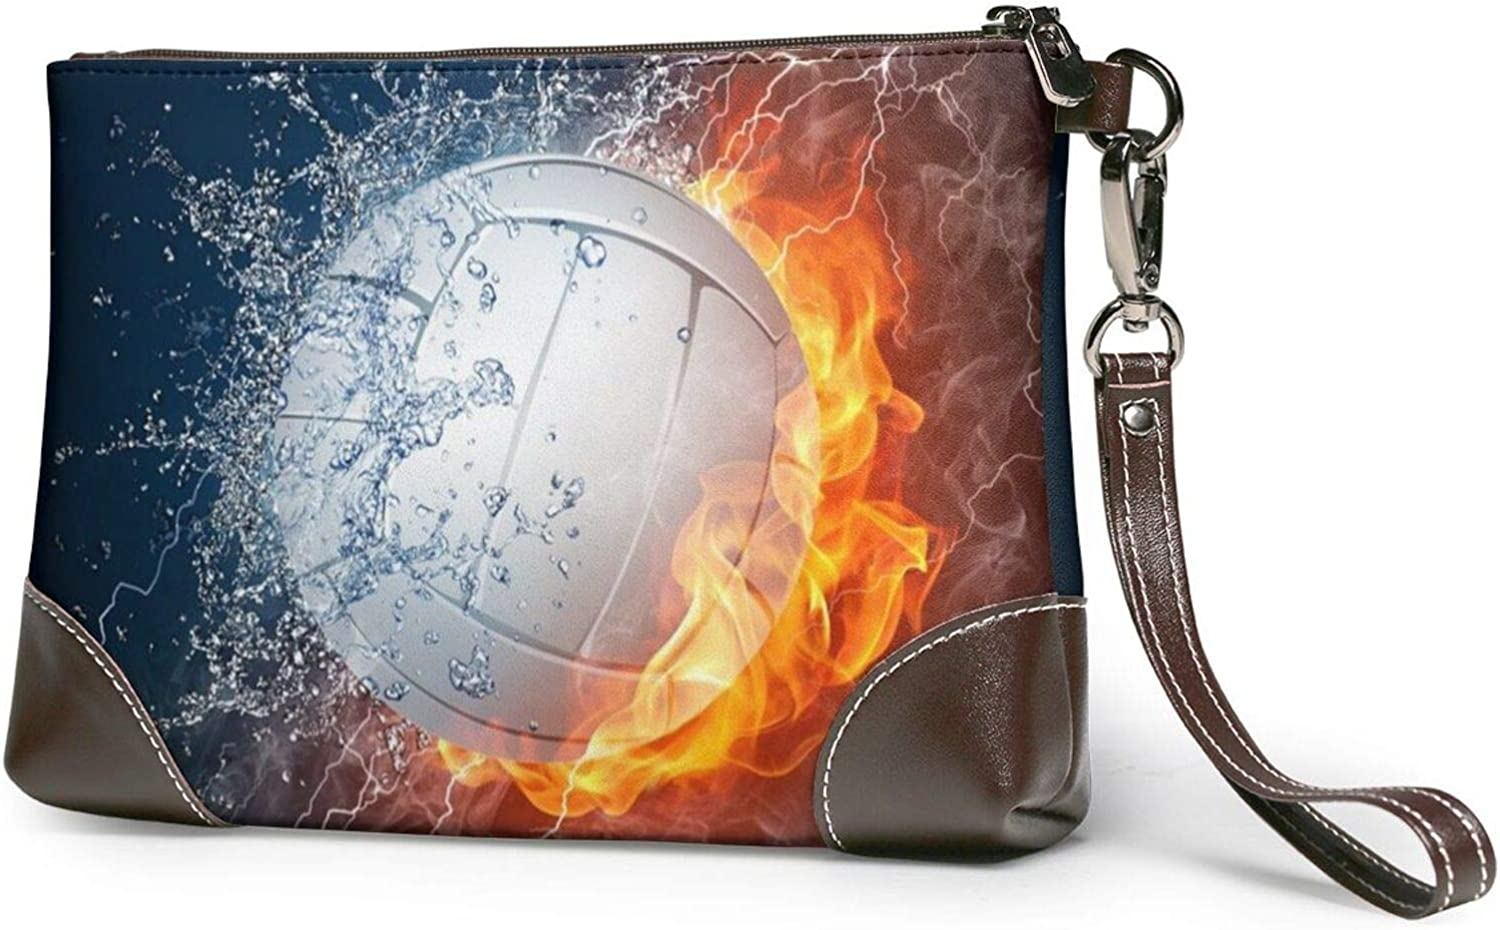 Ice And Fire Volleyball Printed Women'S Wristlet Handbags Purses Wallets Evening Leather Clutch Bags 8in X 5.5in X 1.5in